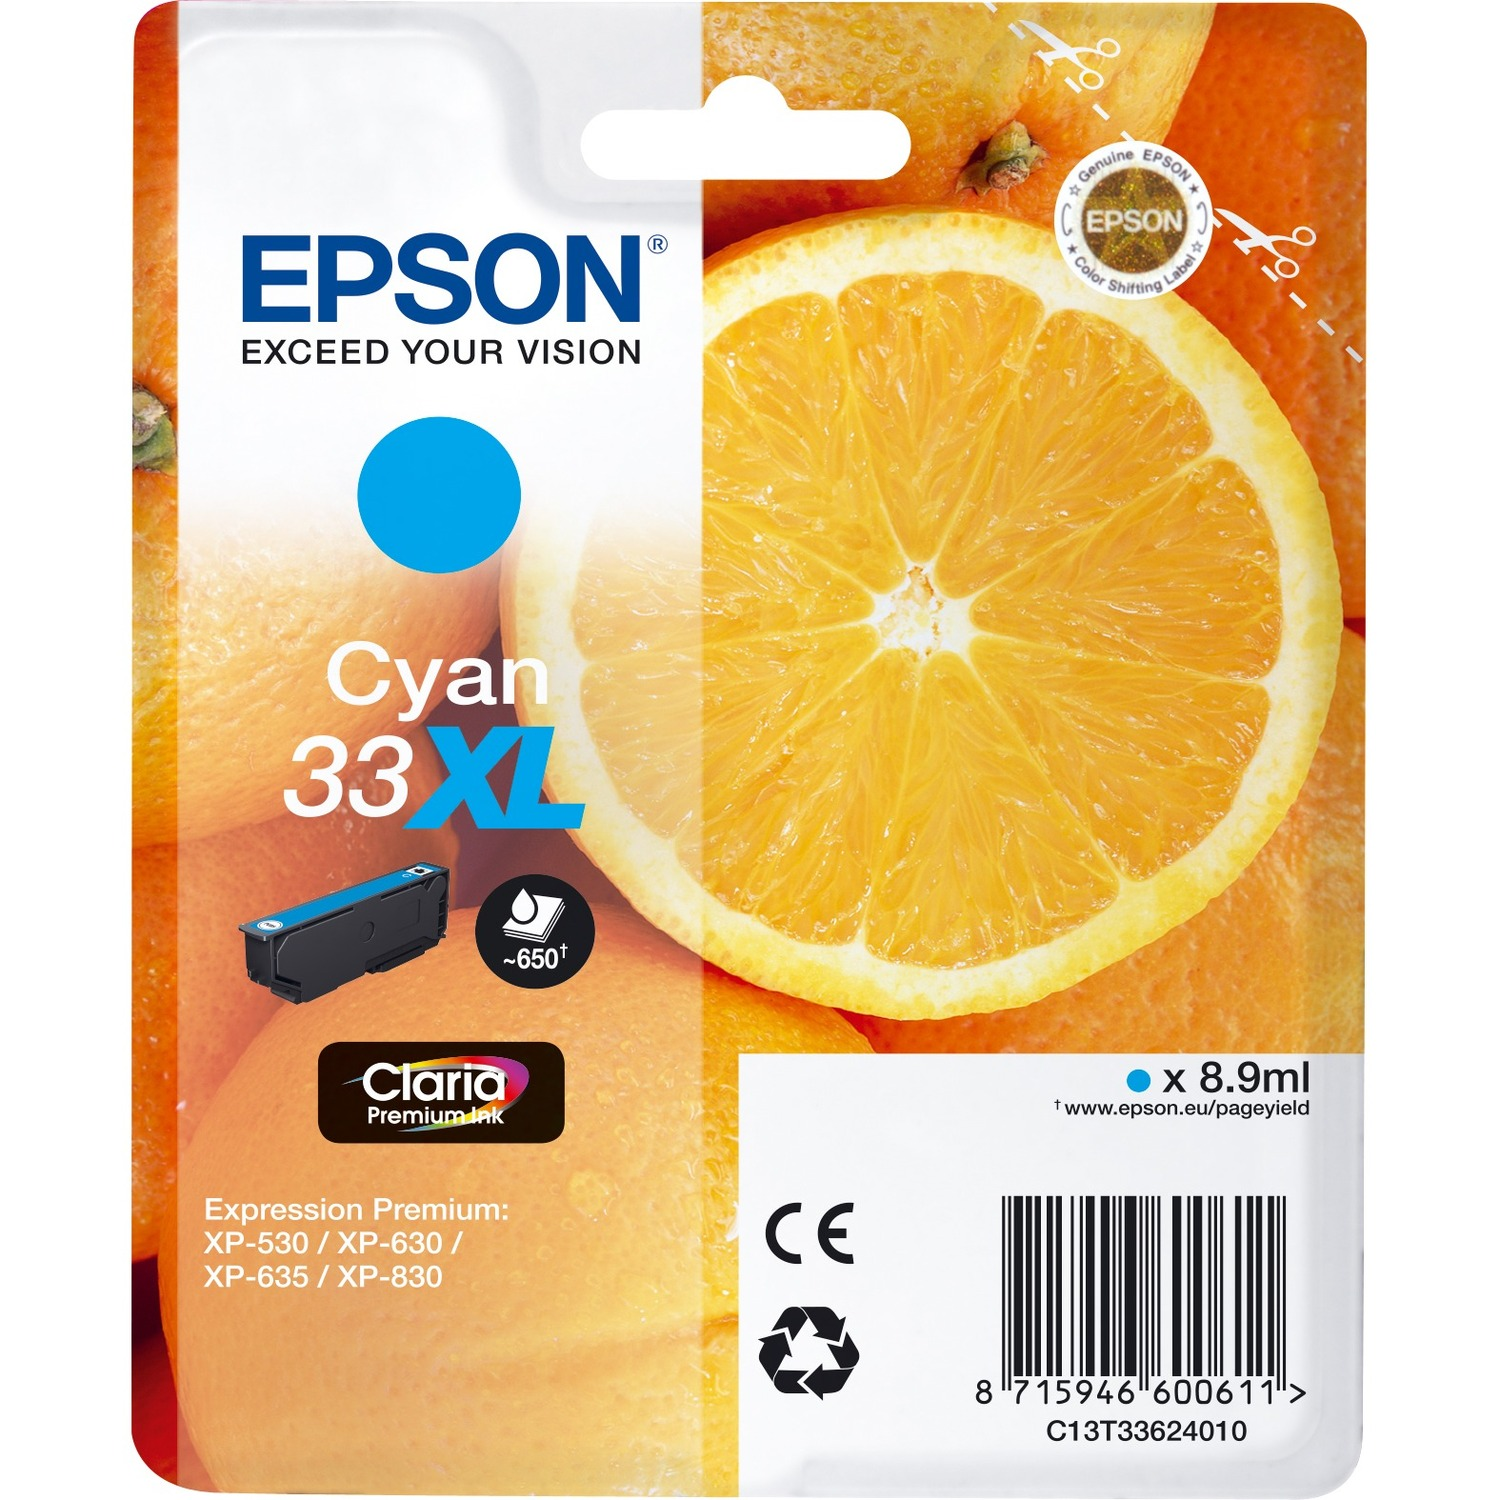 Epson Claria 33XL Ink Cartridge - Cyan - Inkjet - High Yield - 650 Page - 1 / Blister Pack